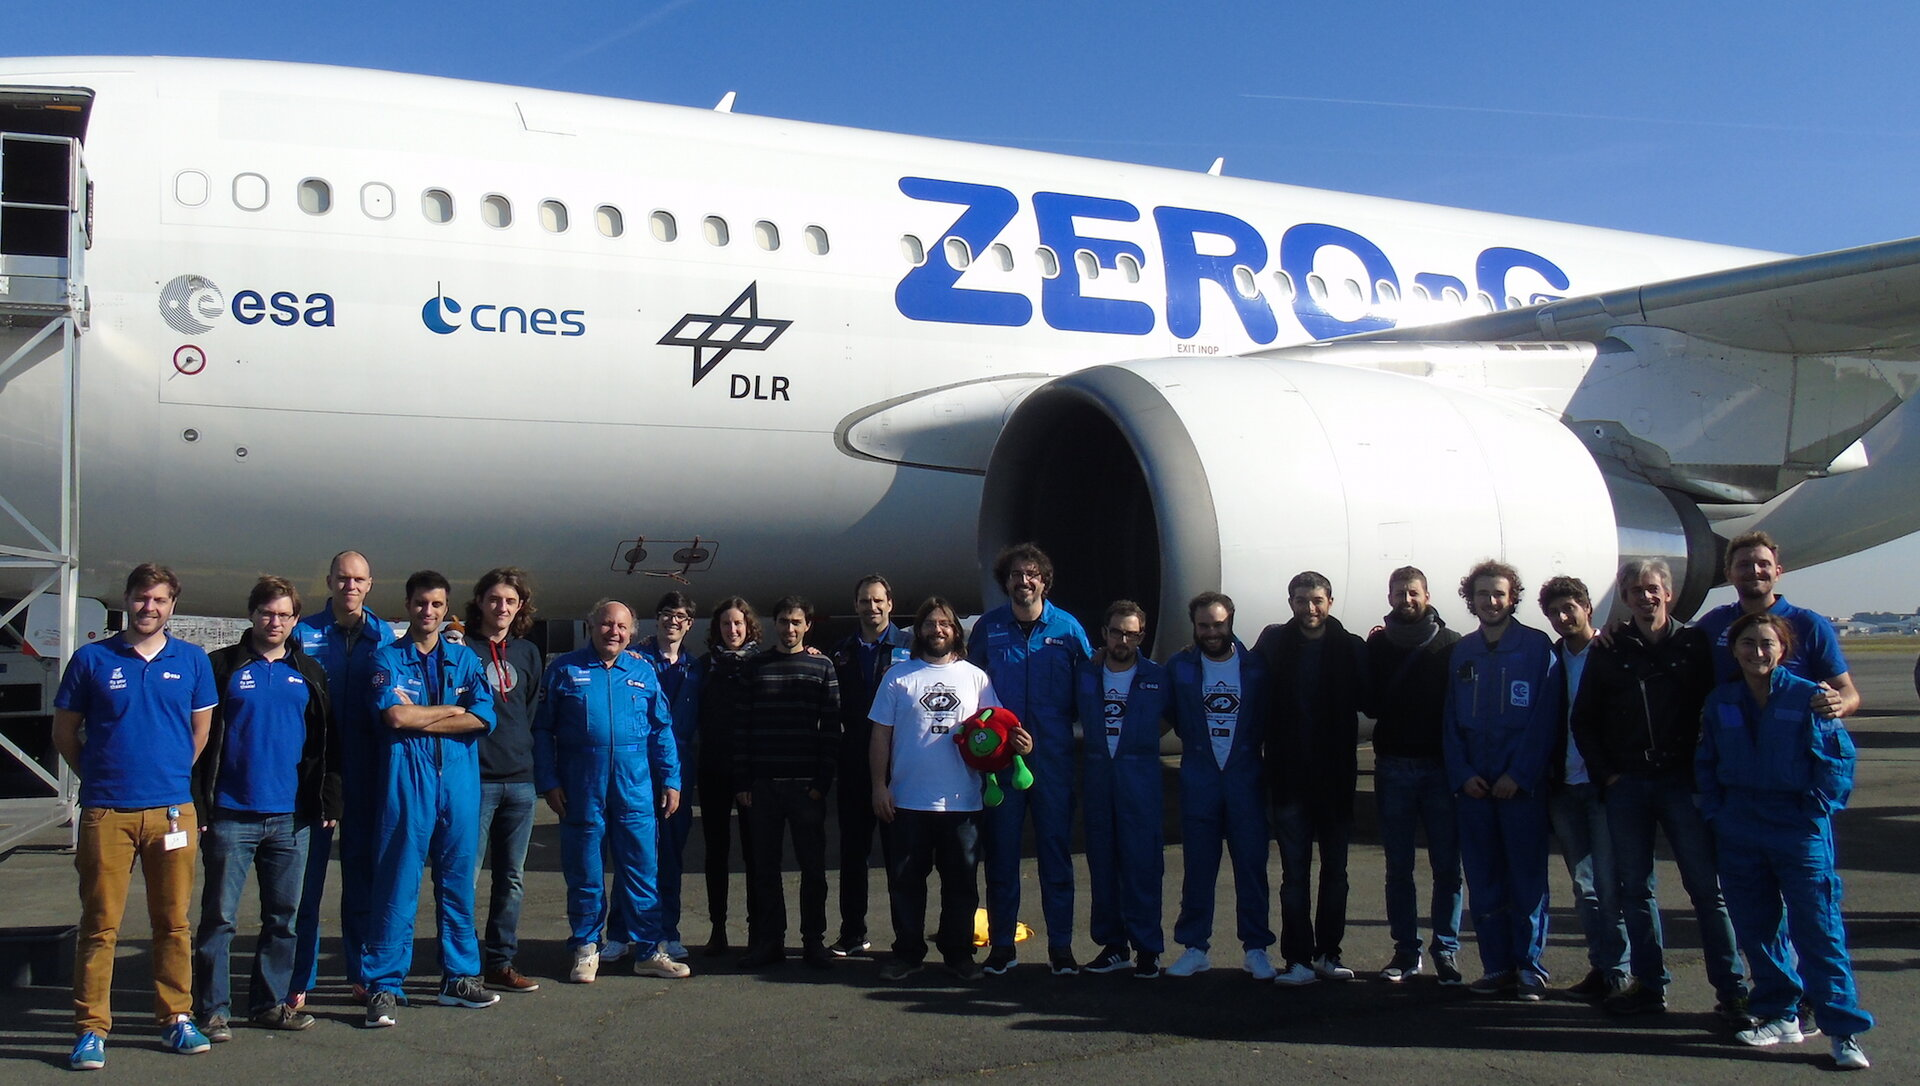 Fly Your Thesis! 2017 students pose in front of the aircraft